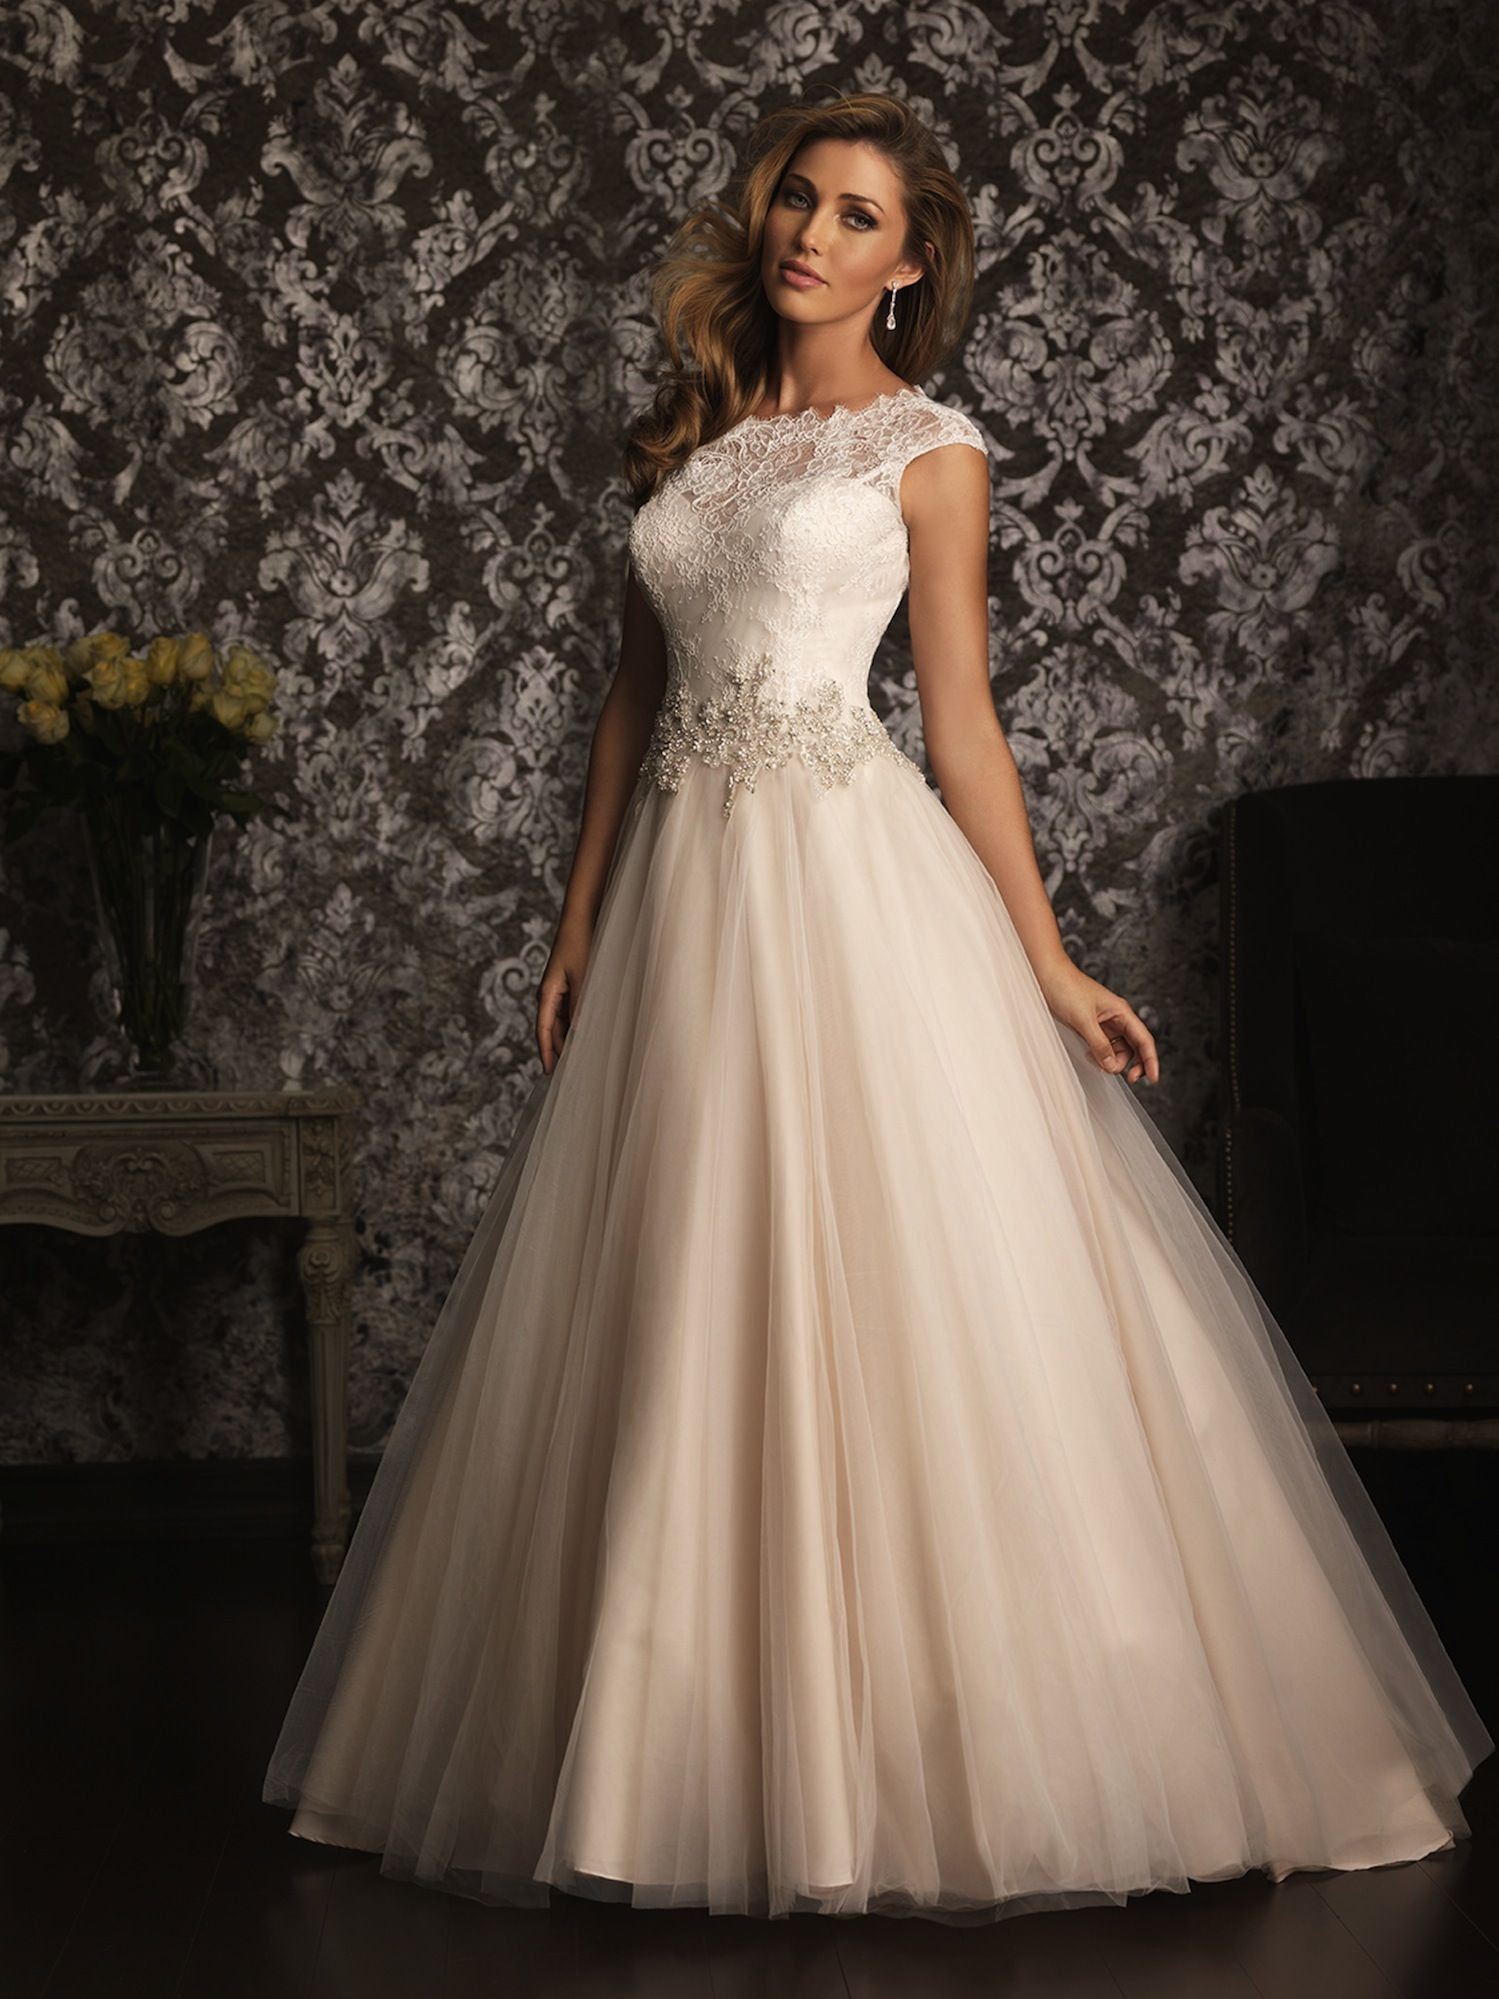 Allure Bridals Wedding Dress Bridal Gown Allure Collection 2013 9022 ...